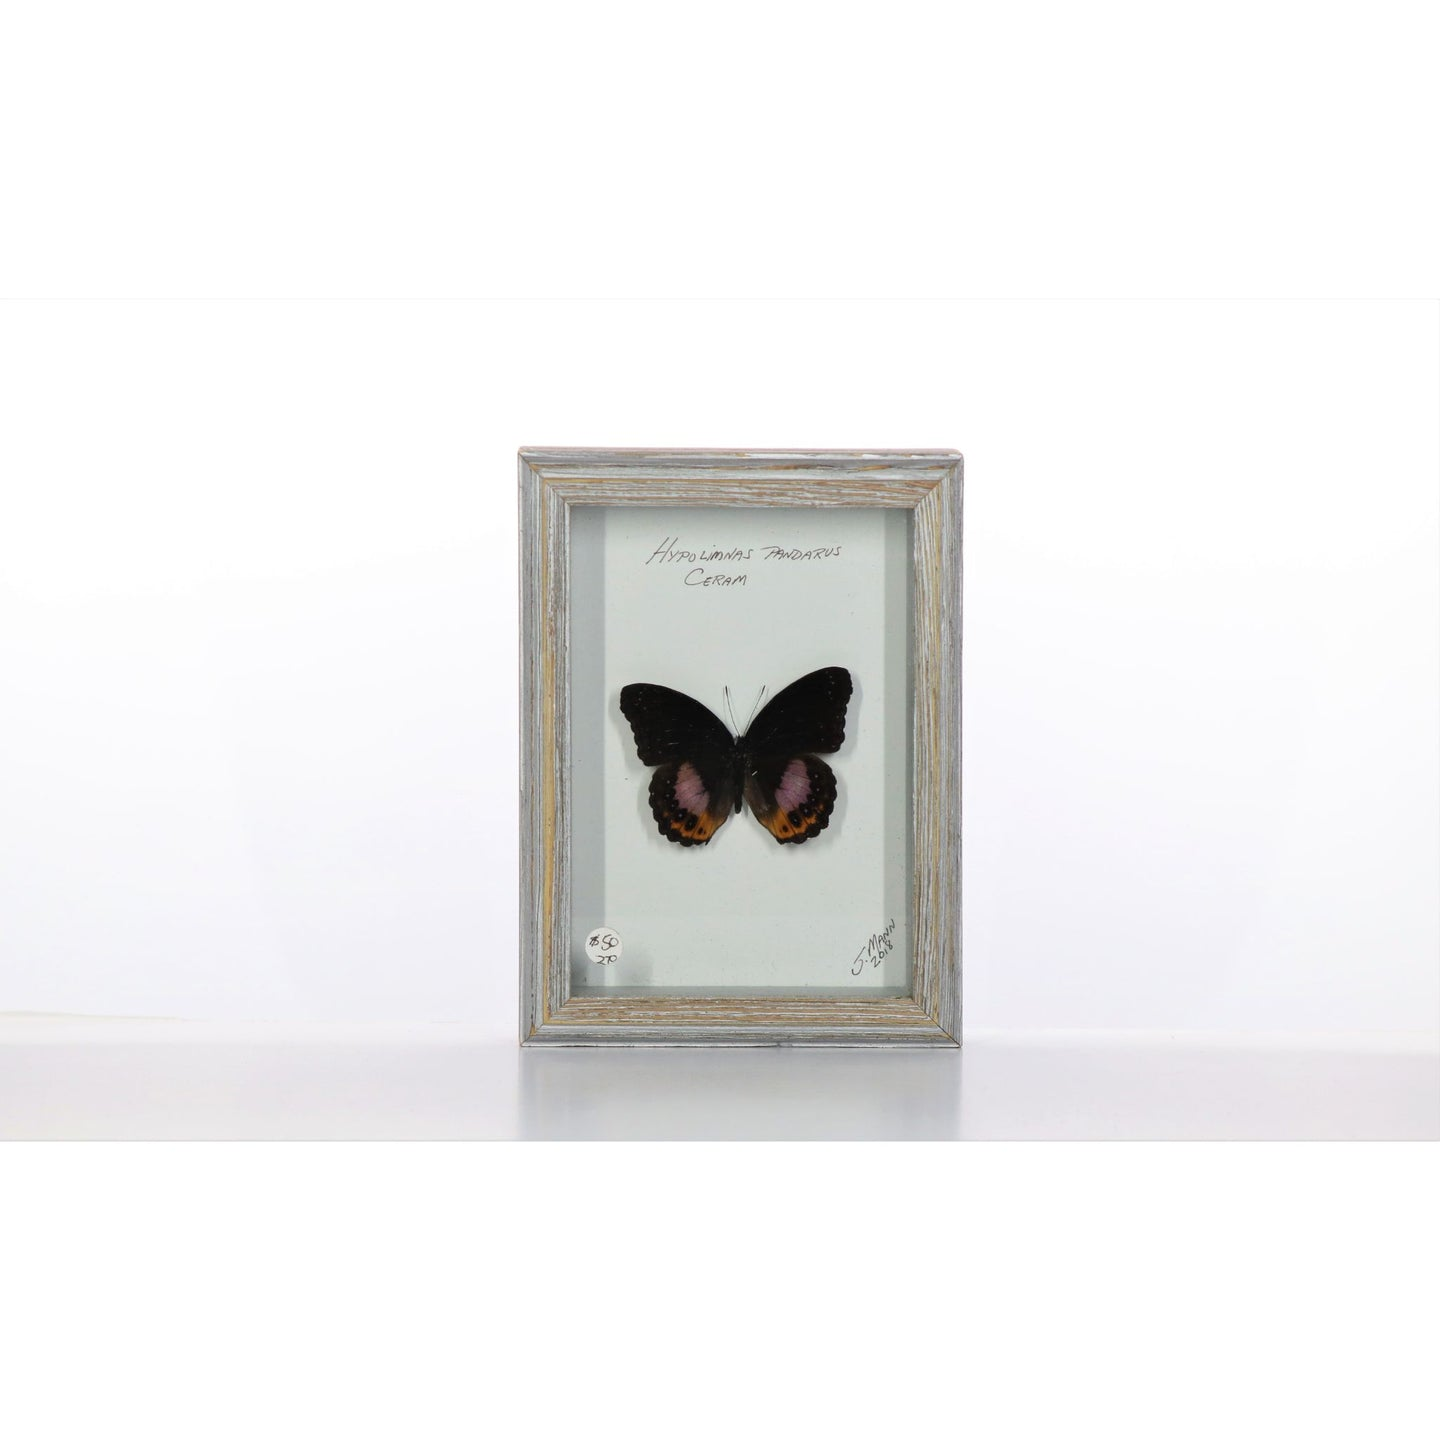 Hypolimnas pandarus Butterfly 5x7 Gray #270 Framed Art - Insecta Etcetera